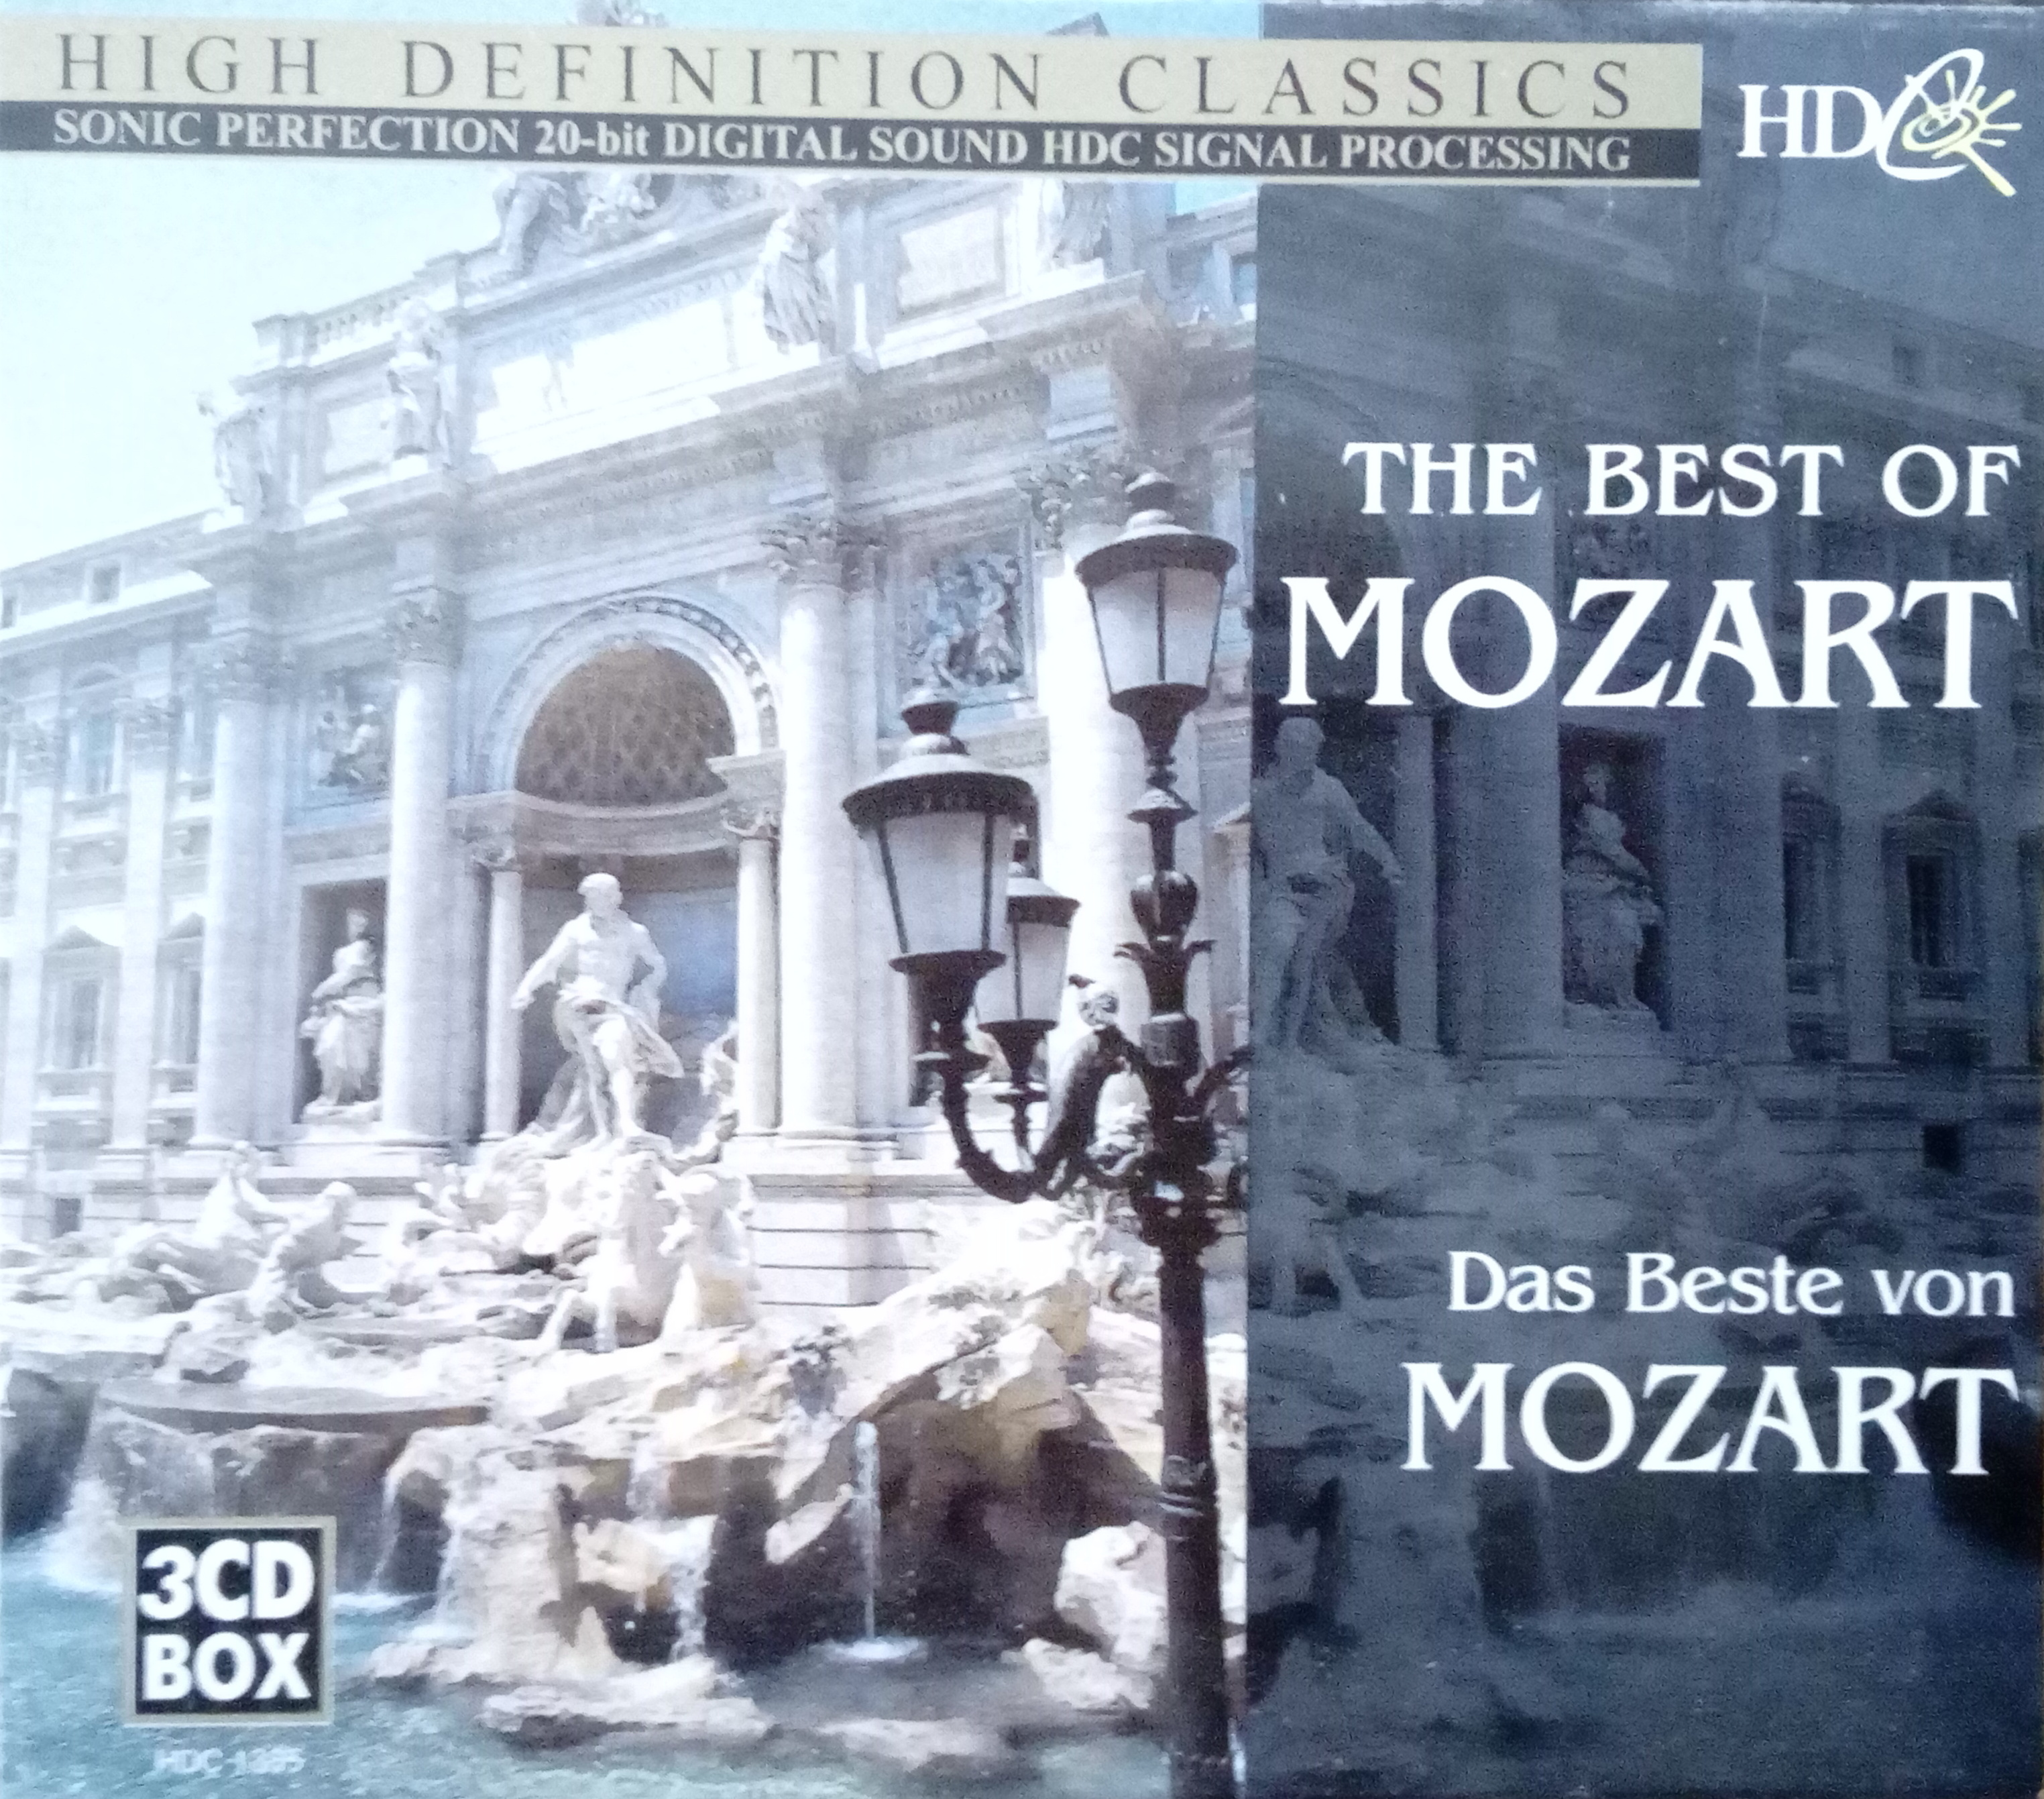 High definition classical - The best of Mozart 3CD